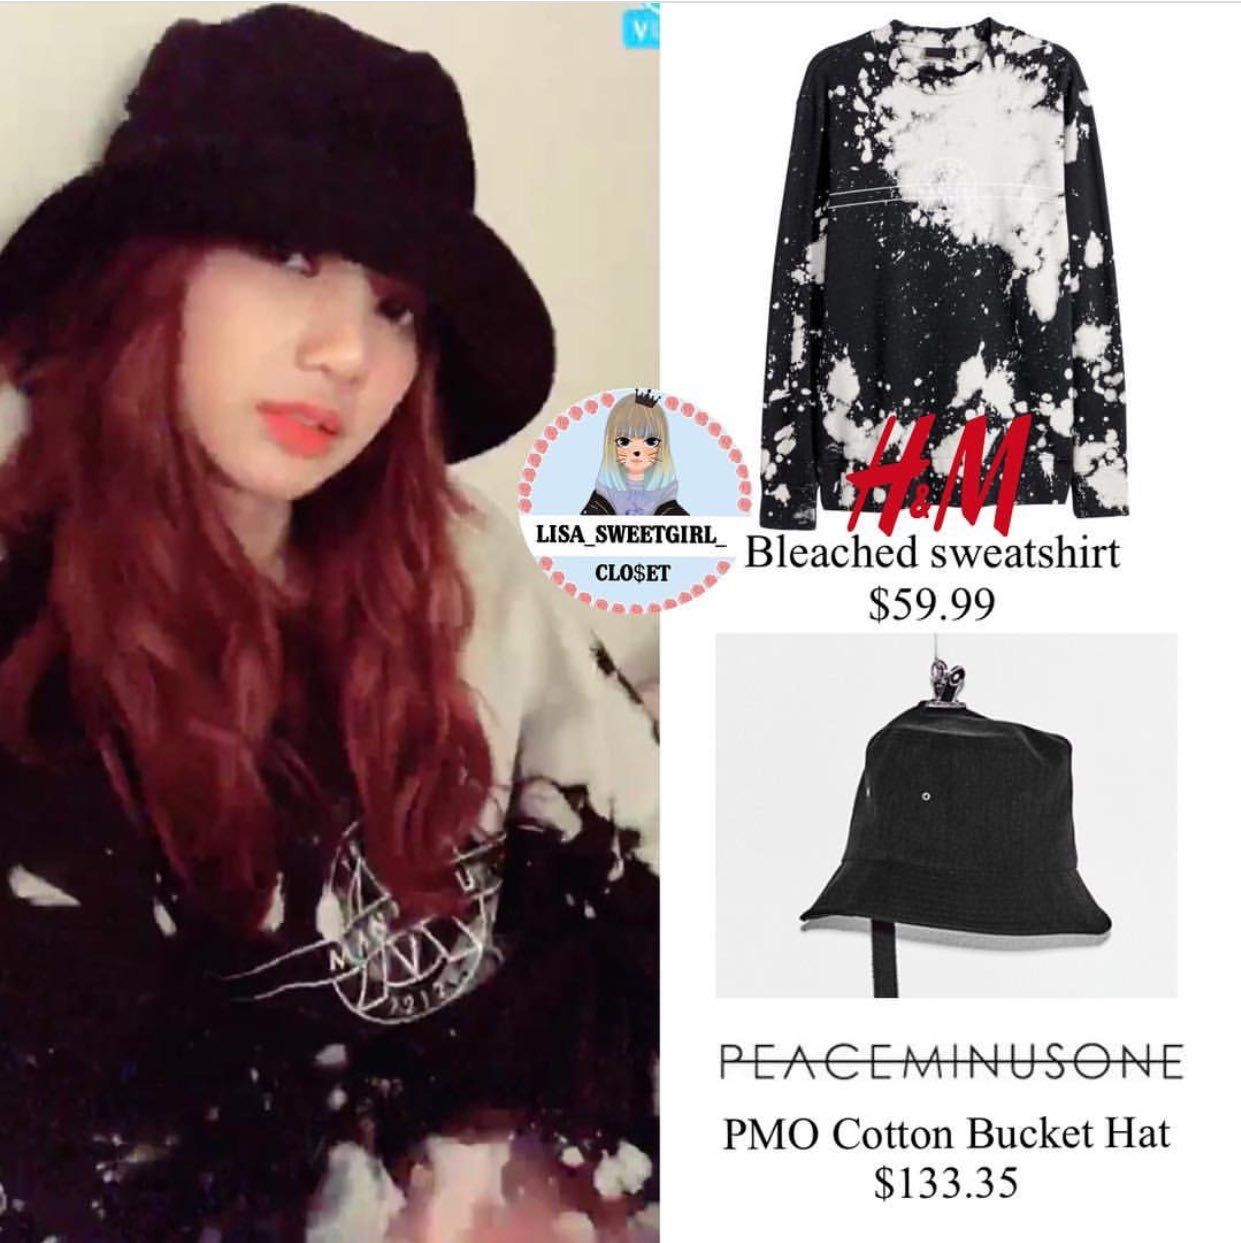 Pin by Korean Love on BLACKPINK OUTFITS ❤ in 2019  c12f23f34d0